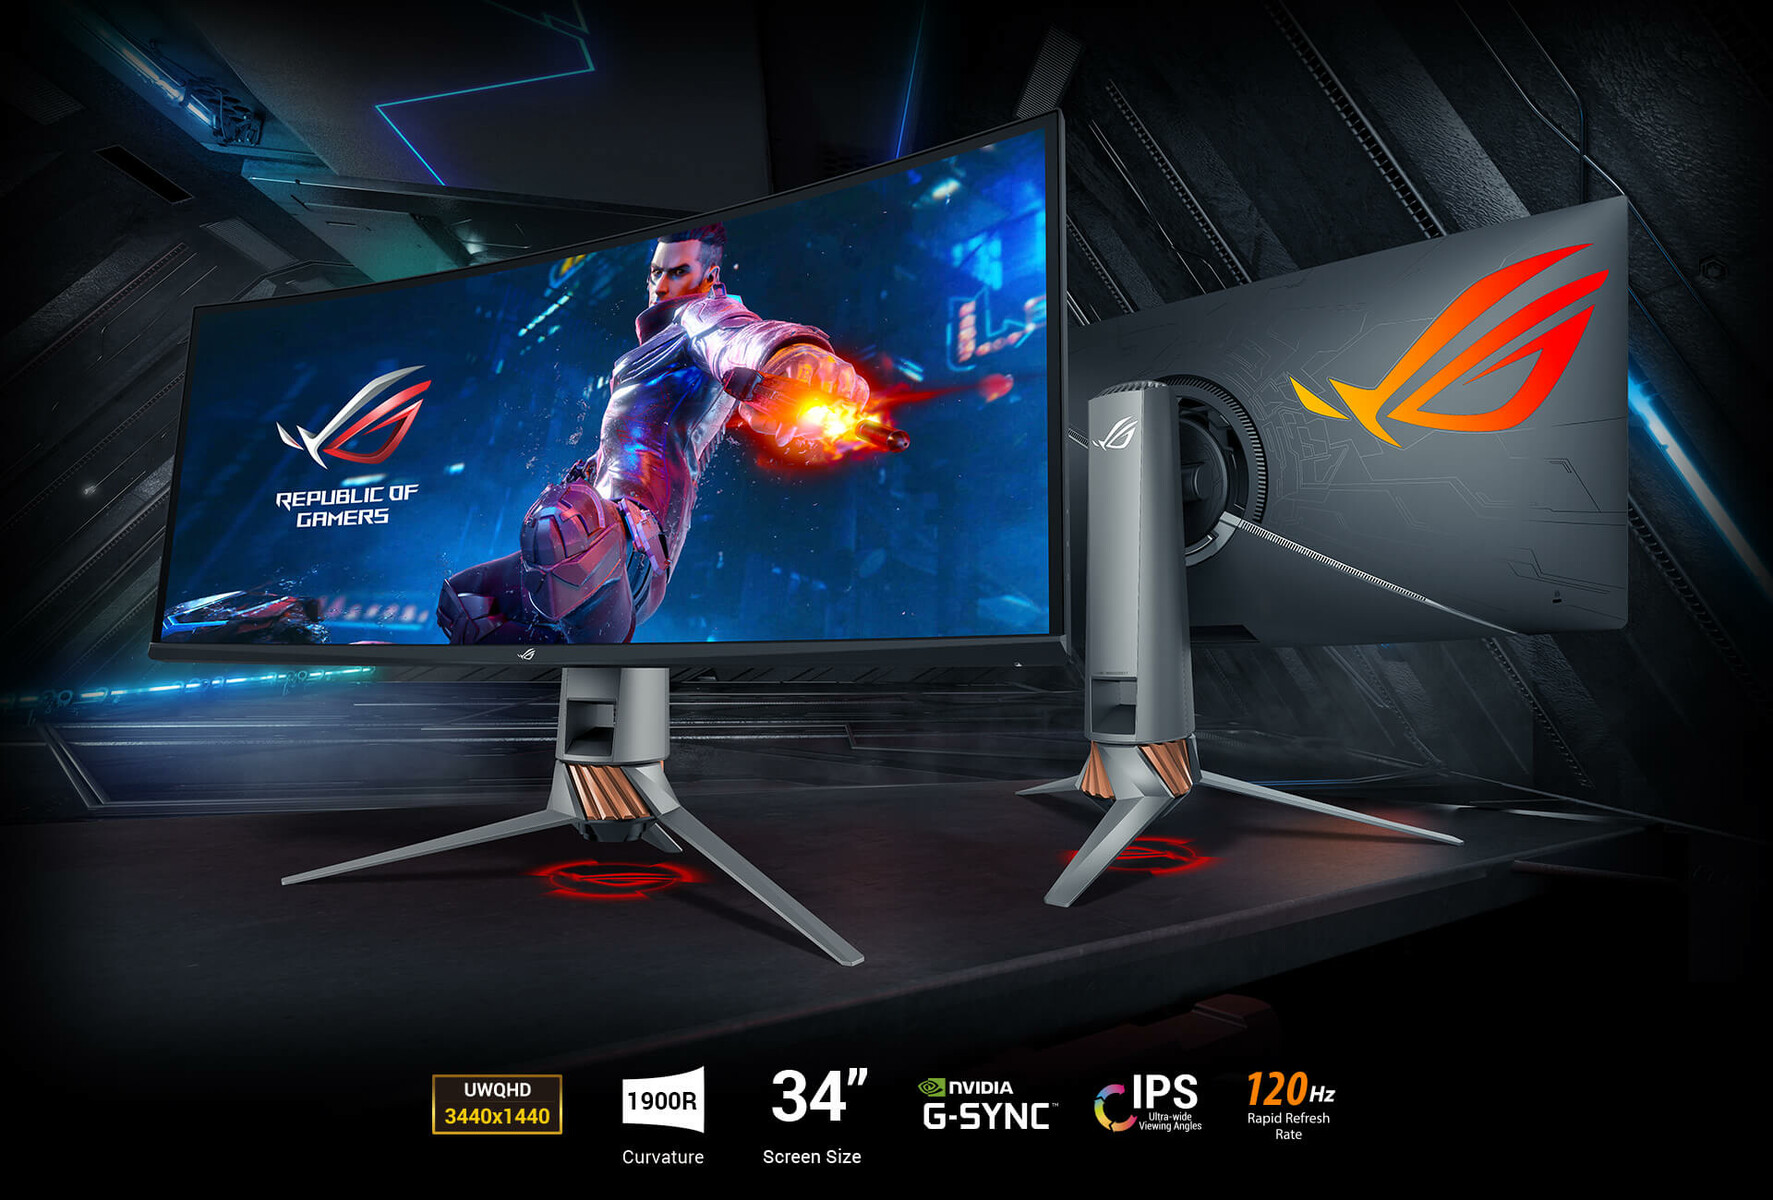 The latest ASUS ROG ultra-wide gaming monitor is overclockable to